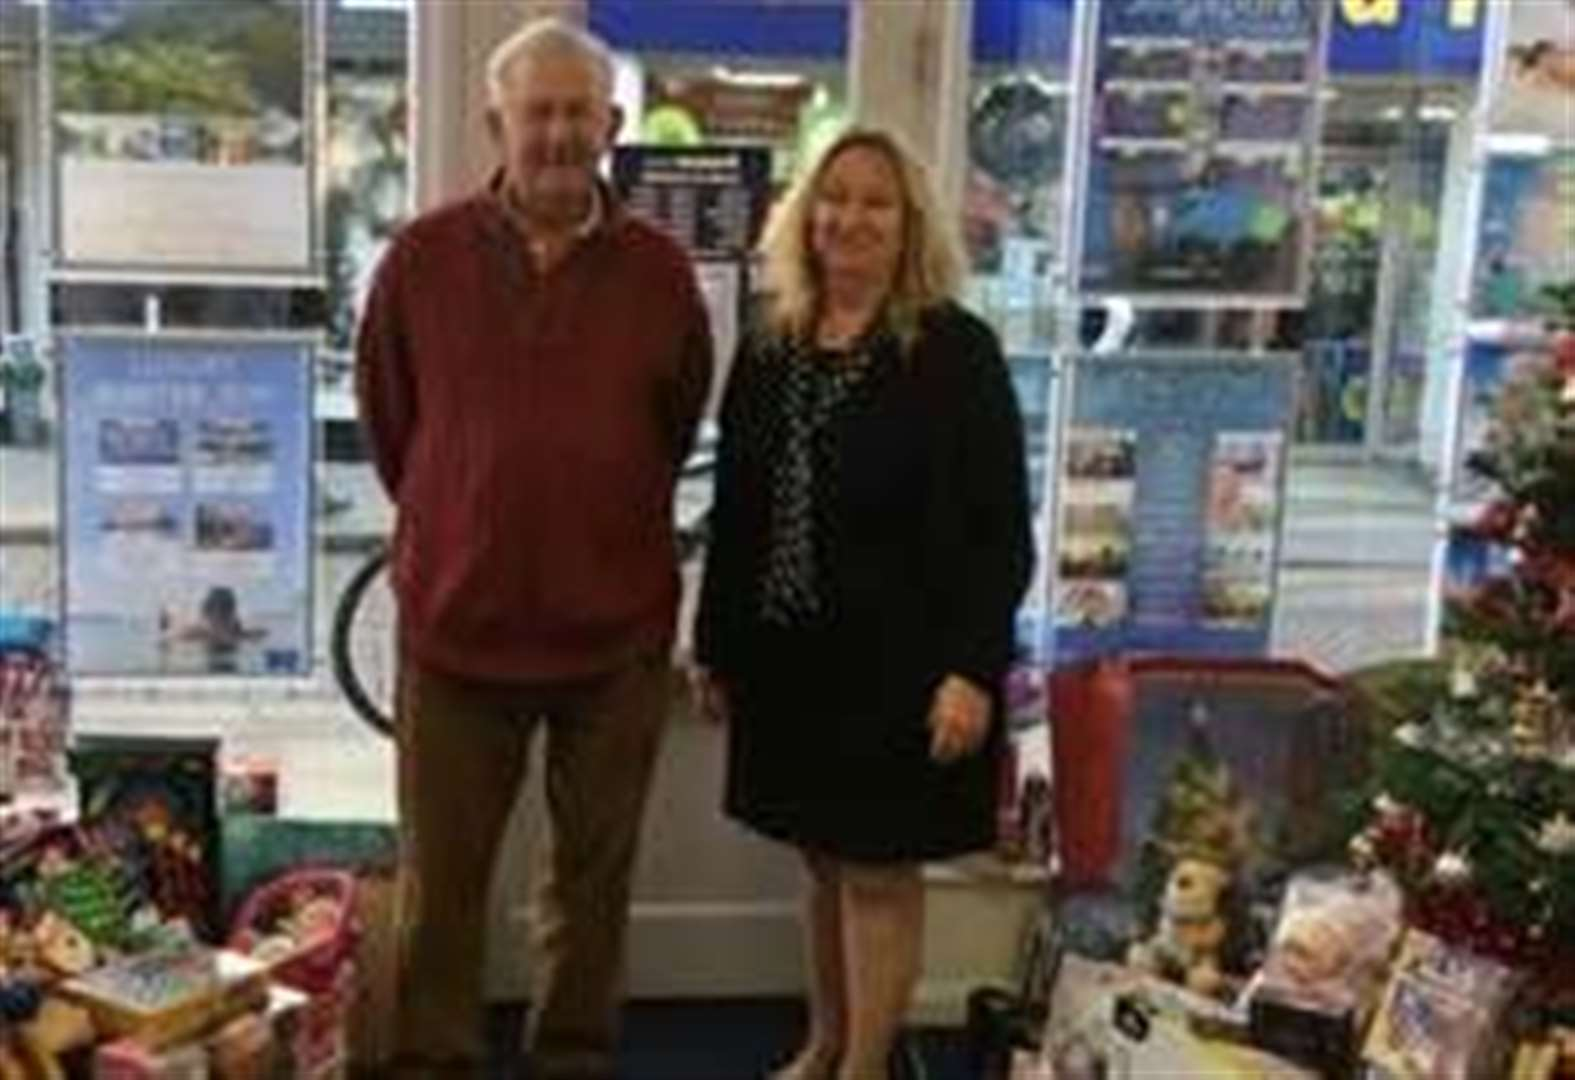 Big response to Stortford business's Christmas gift appeal for kids in care